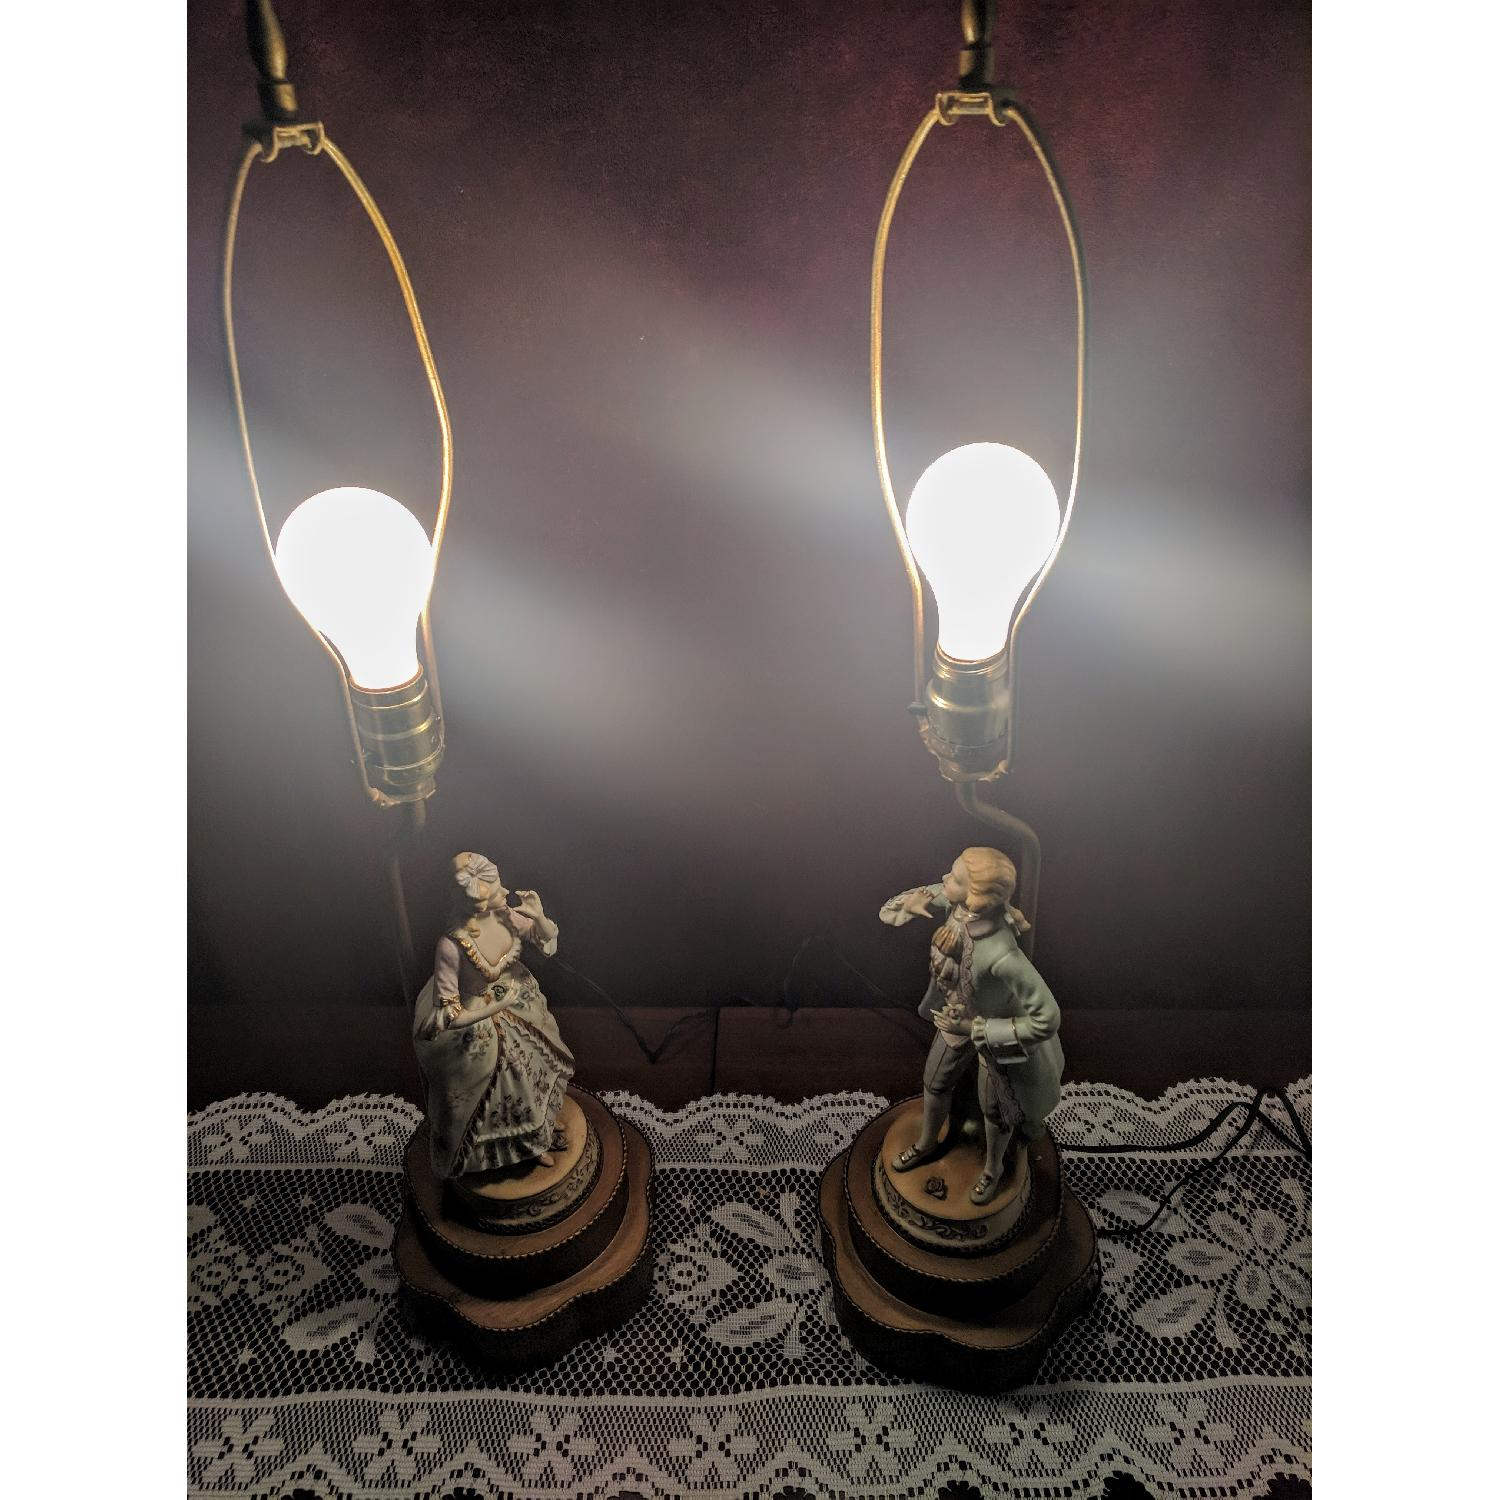 Antique Figurine Lamps w/ Metal Base-11